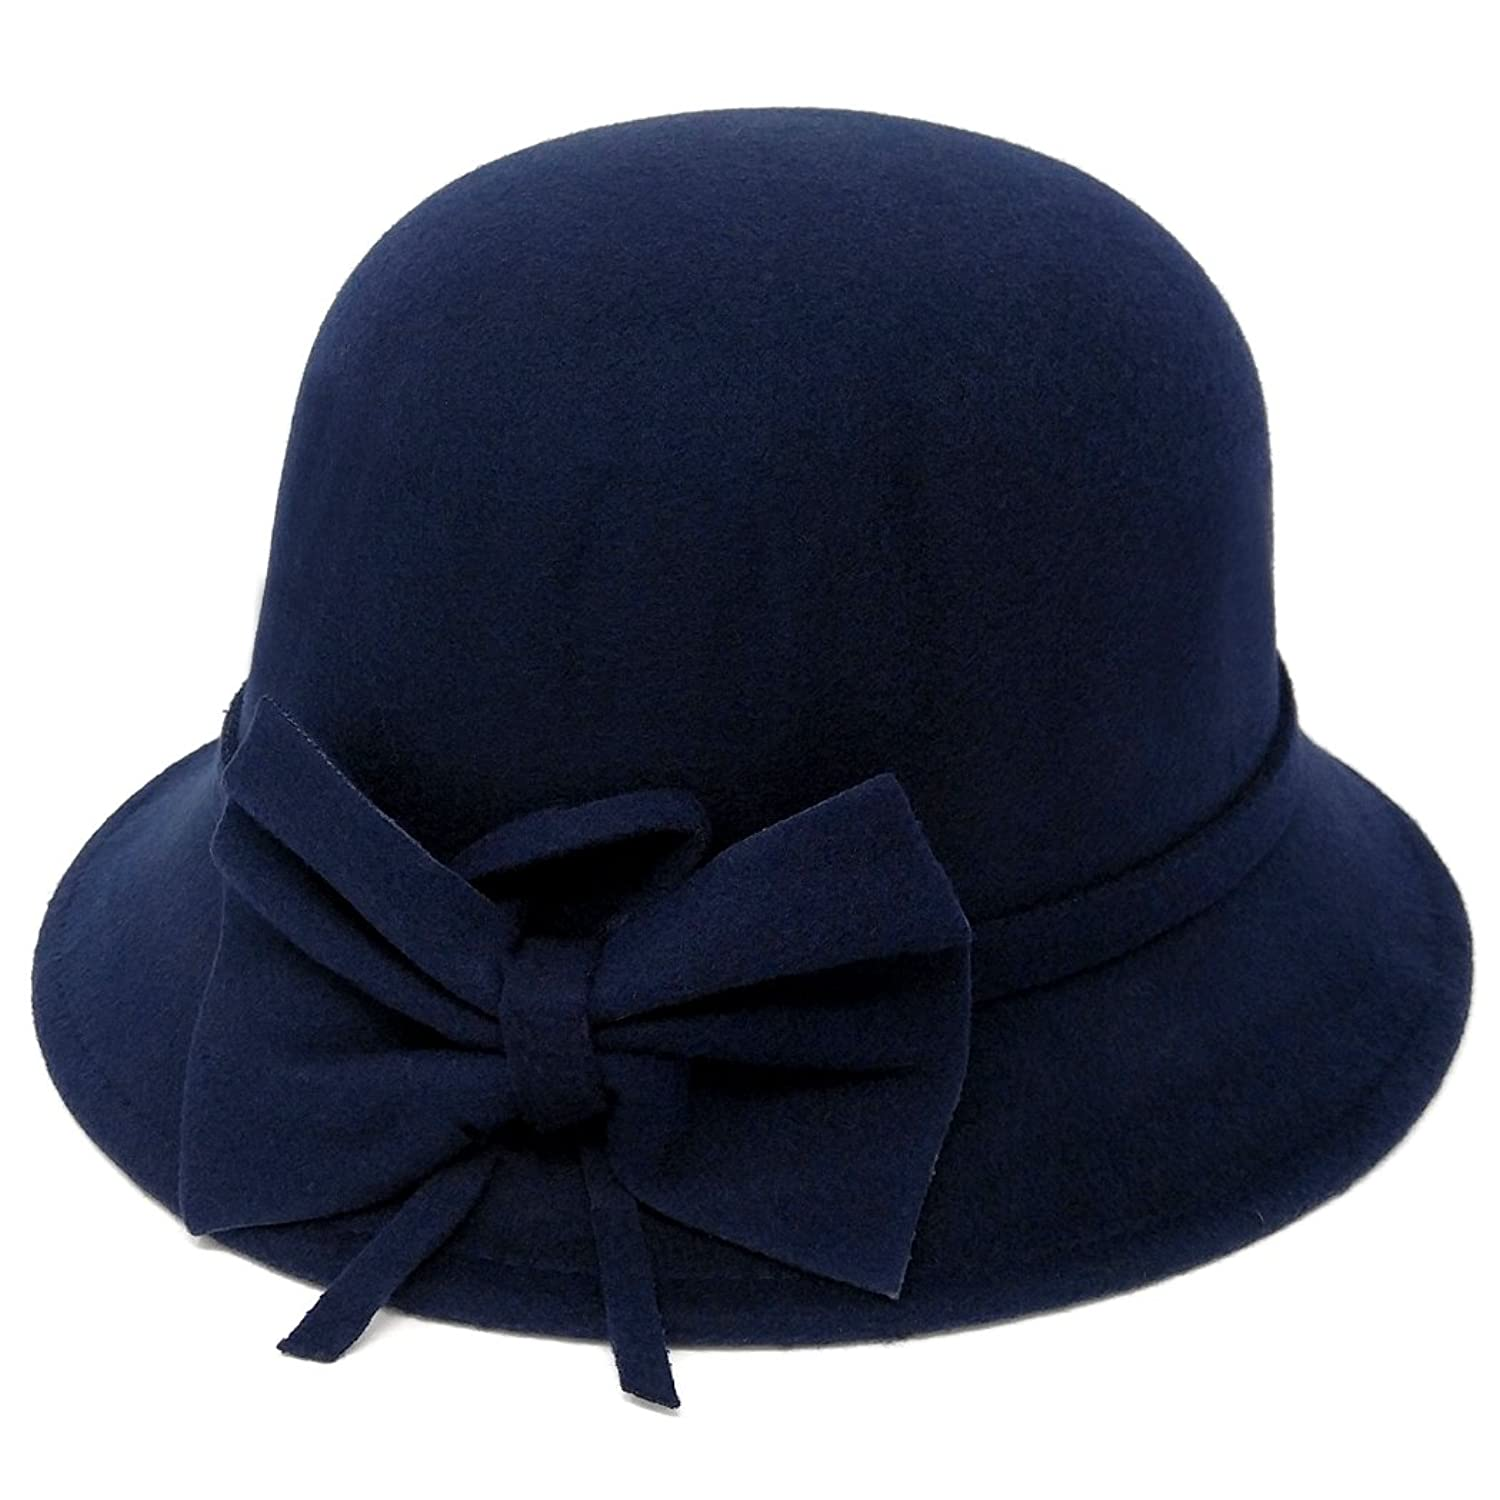 1930s Style Hats | 30s Ladies Hats Vintage Style Felt Cloche Fedora Hat Matching Hatband with Side Bow Adjustable $24.95 AT vintagedancer.com